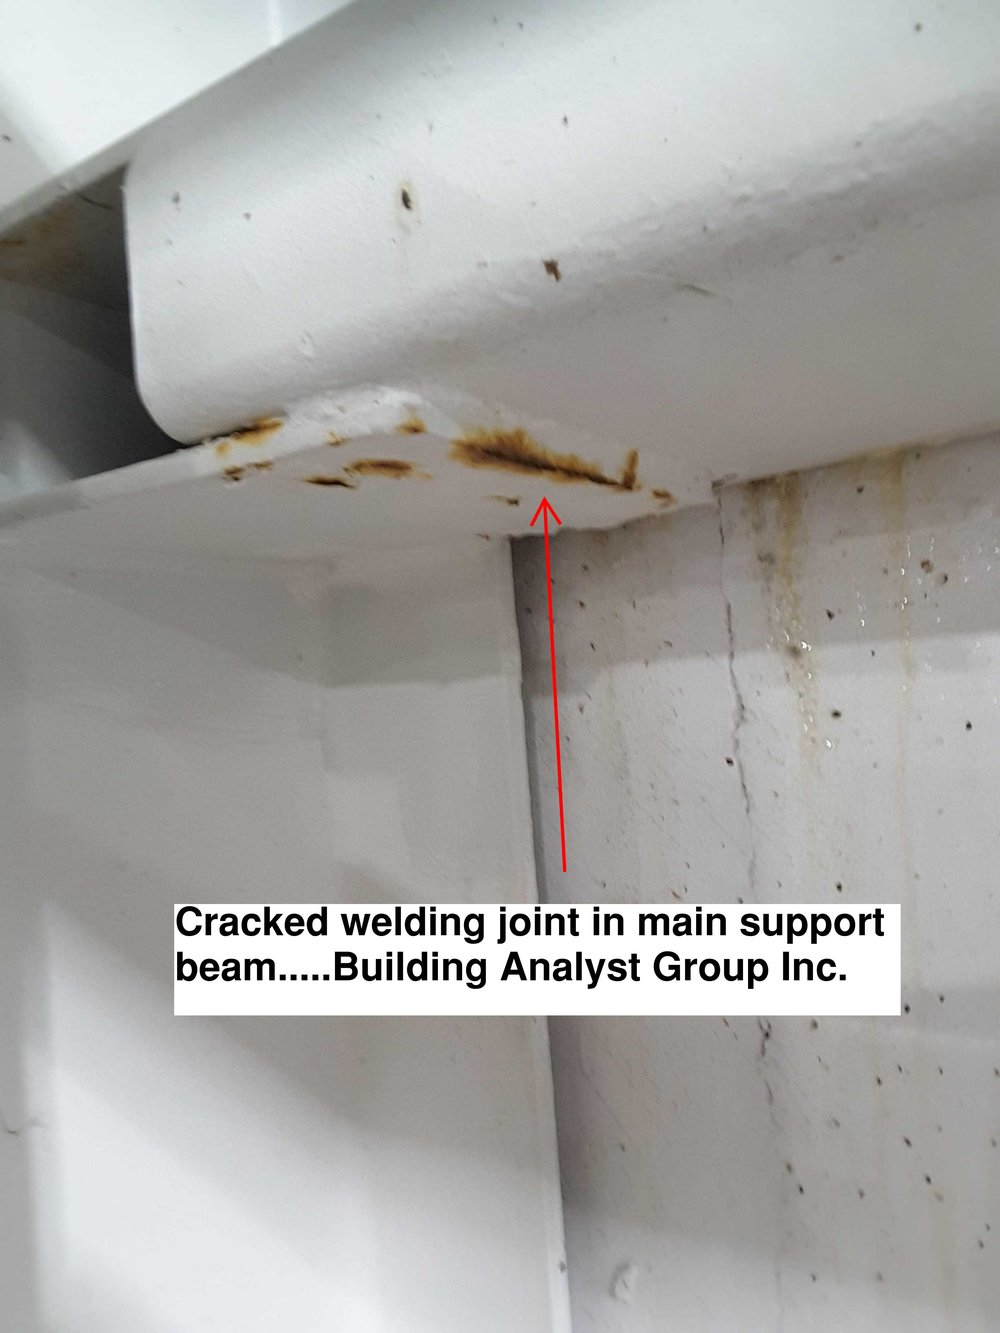 25 Feet From Floor At Top Of Support Beam -